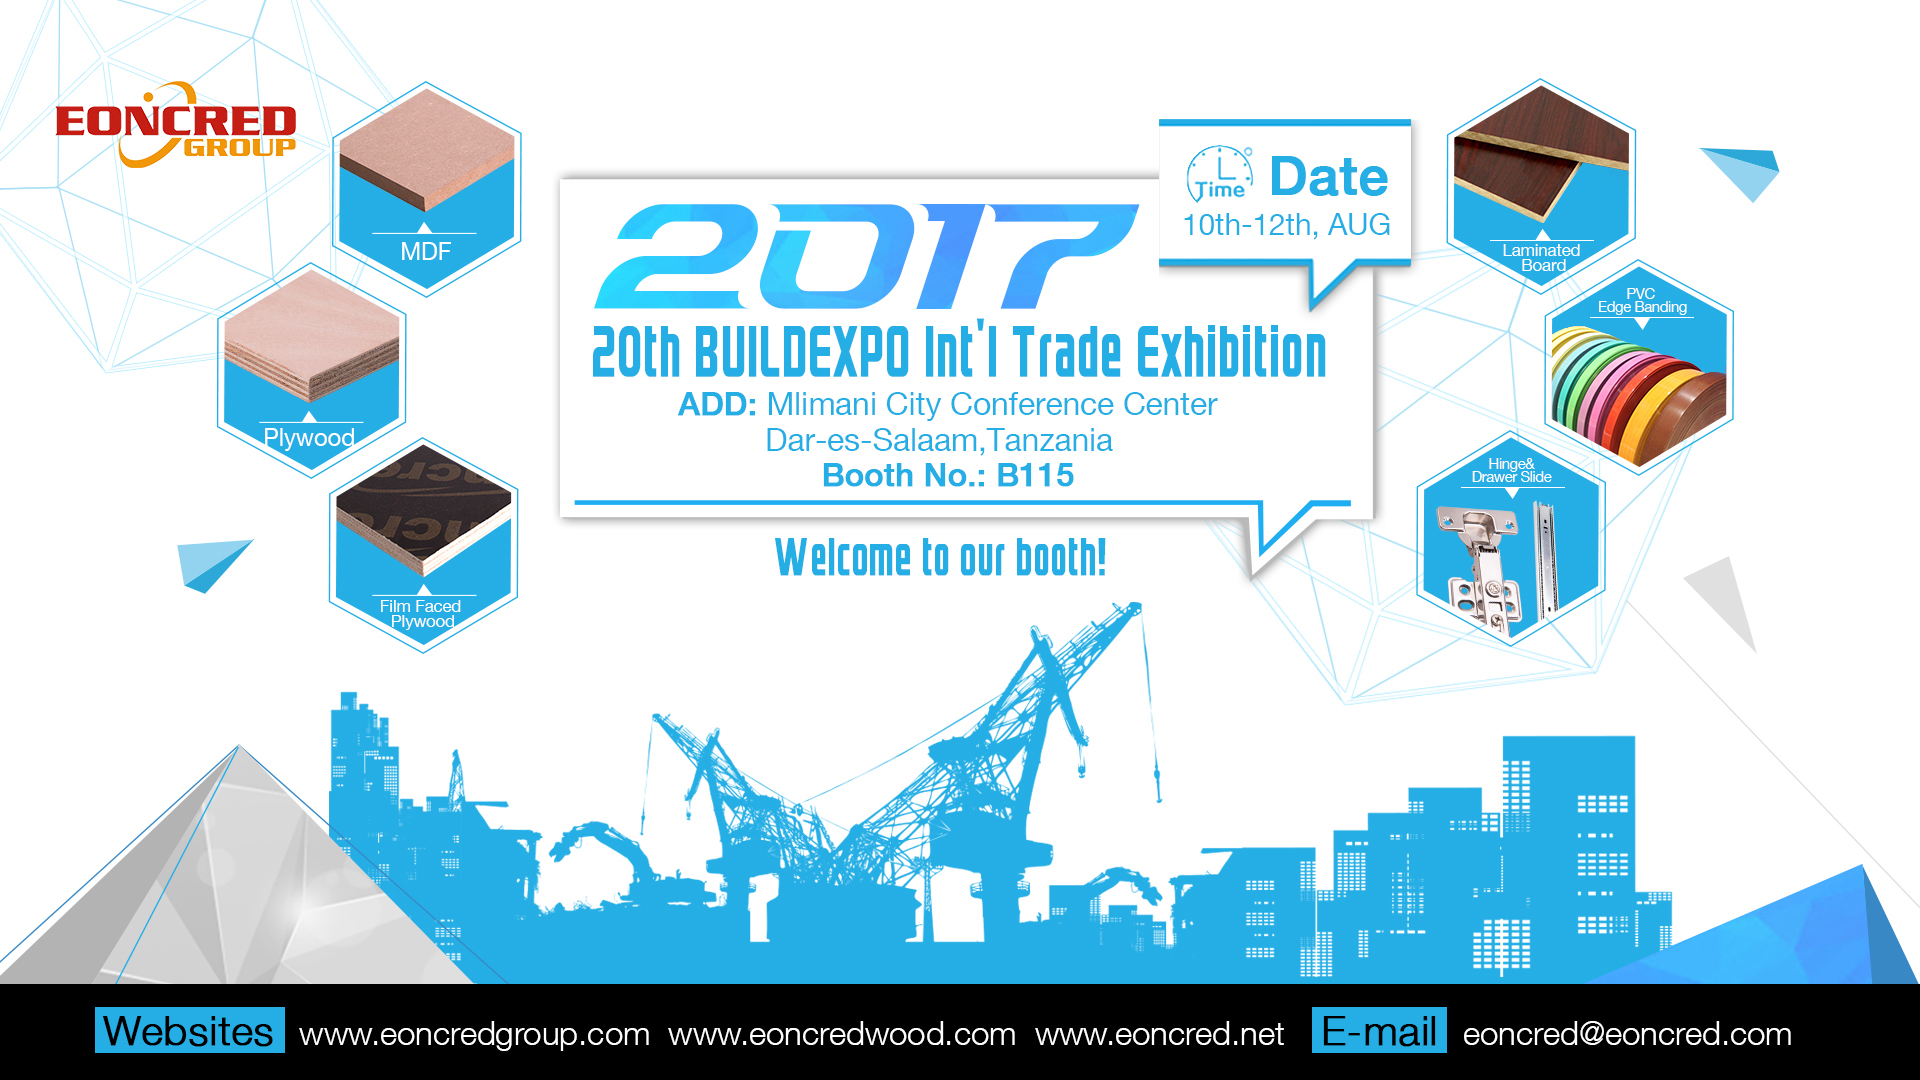 2017 20th BUILDEXPO Int'l Trade Exhibition